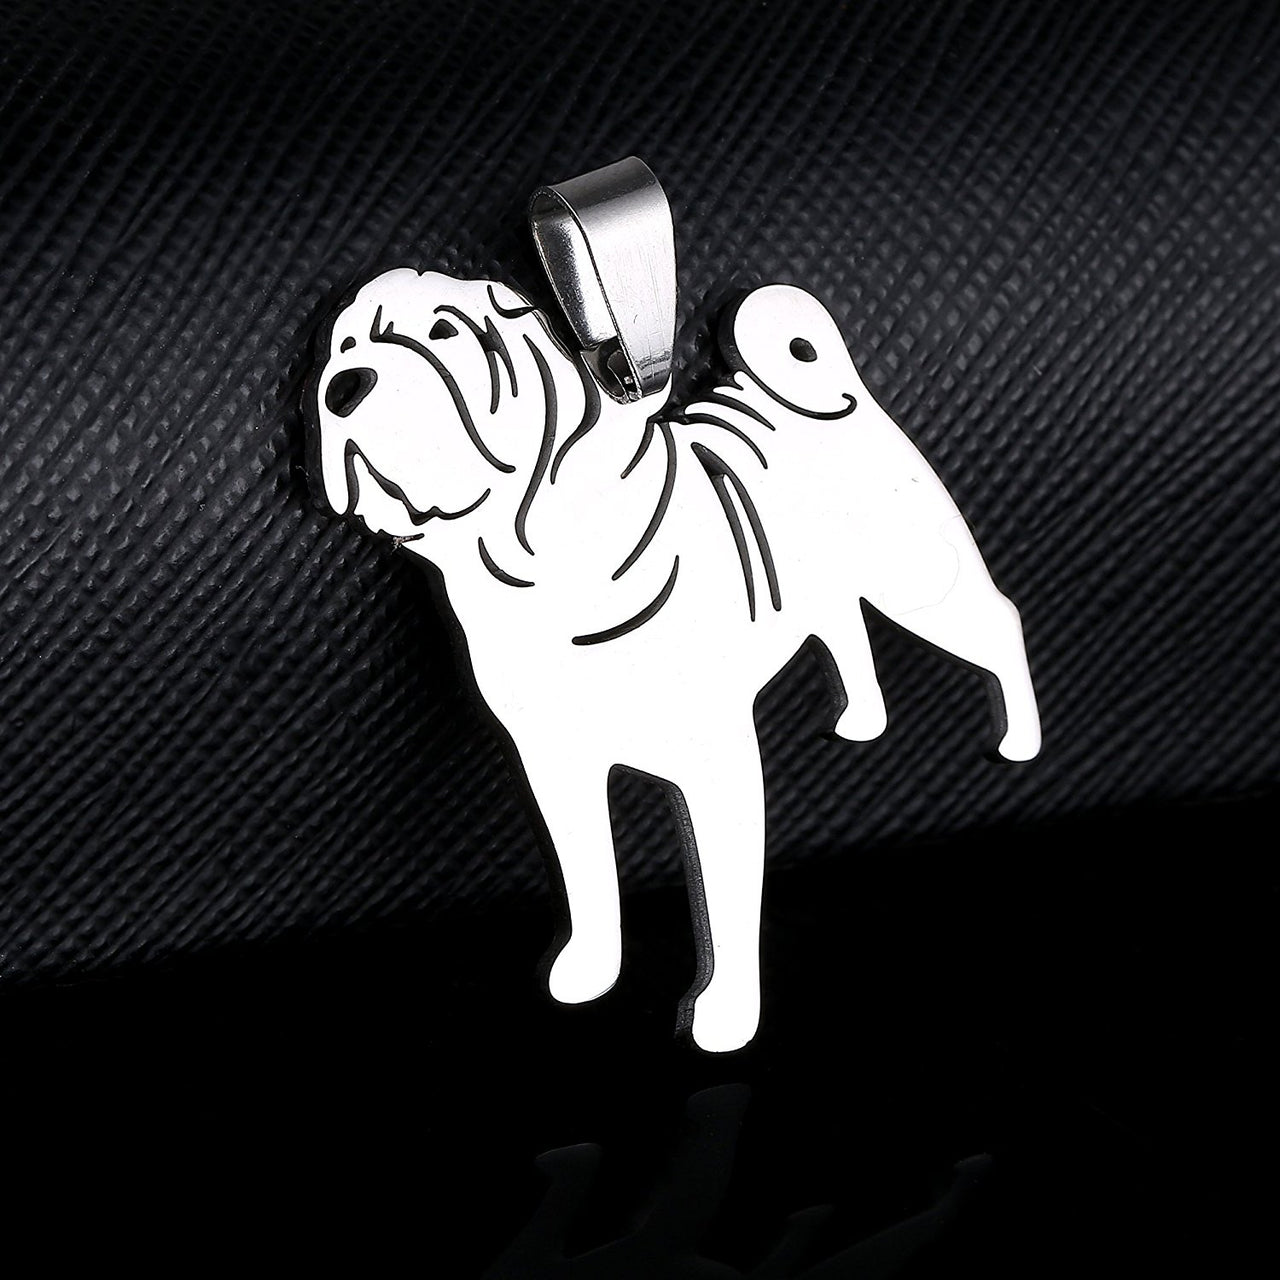 Stainless Steel Sharpei Chinese Shar Pei Silhouette Pet Dog Tag Breed Collar Charm Pendant Necklace